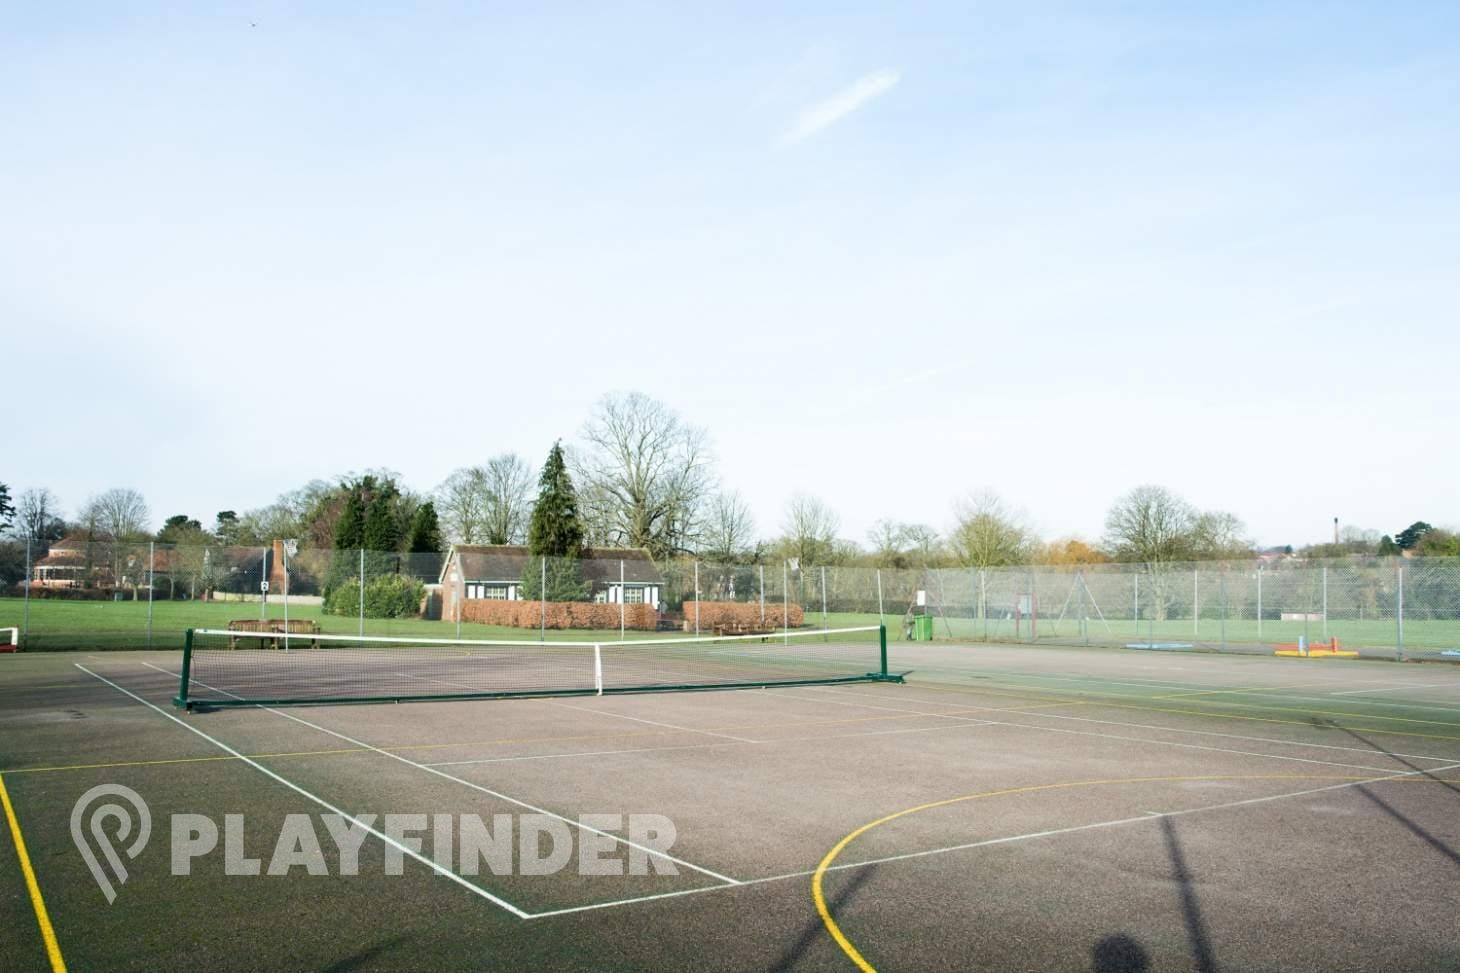 Abbey View Golf Course Outdoor | Hard (macadam) basketball court